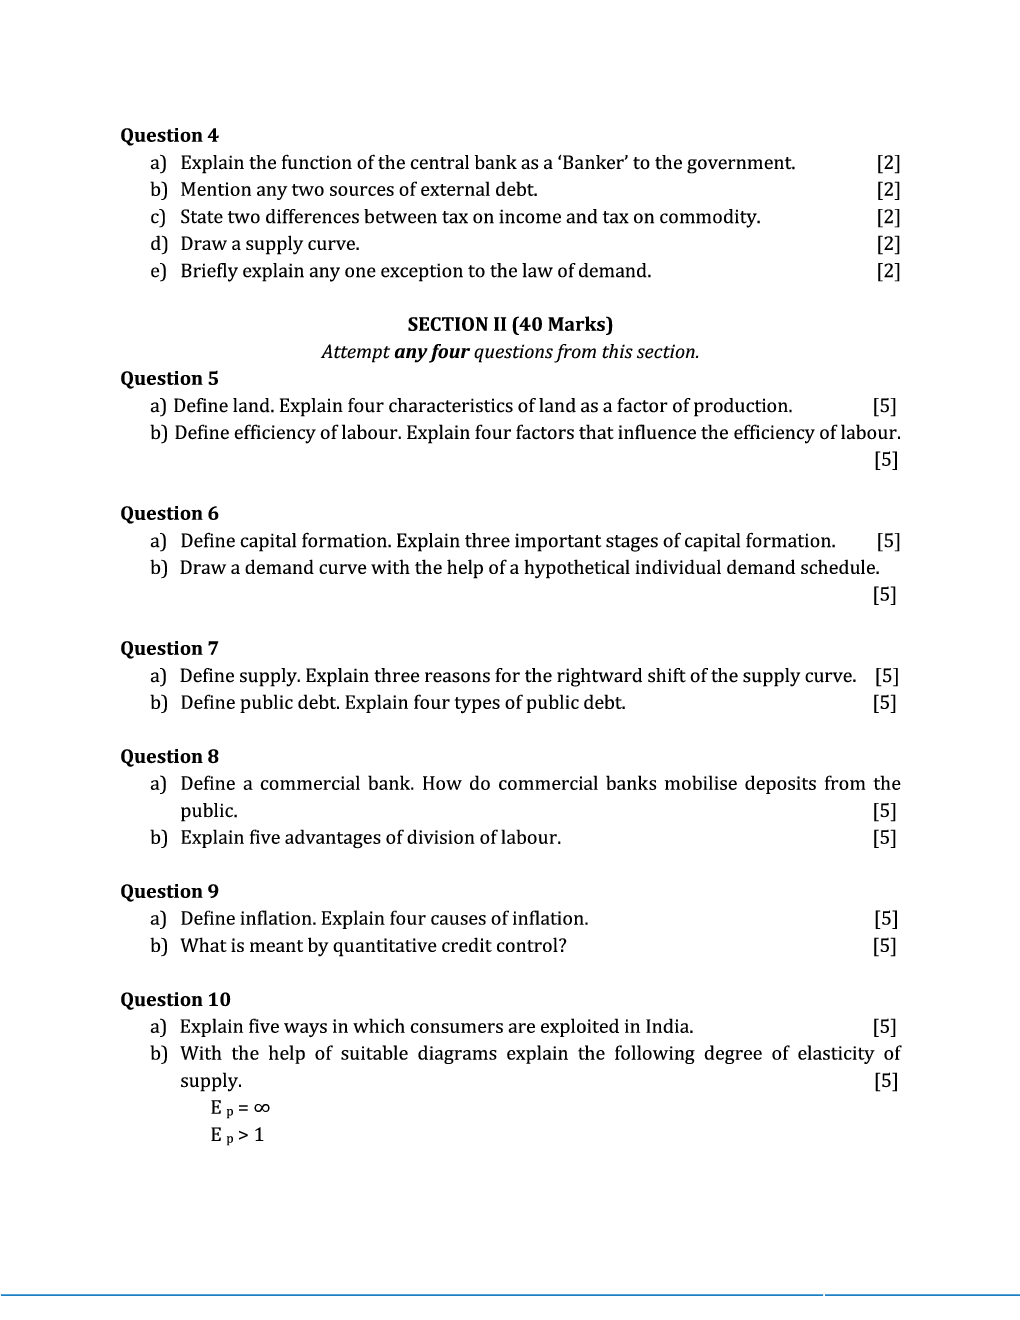 ICSE Sample Question Papers For Class 10 Economics - Page 3